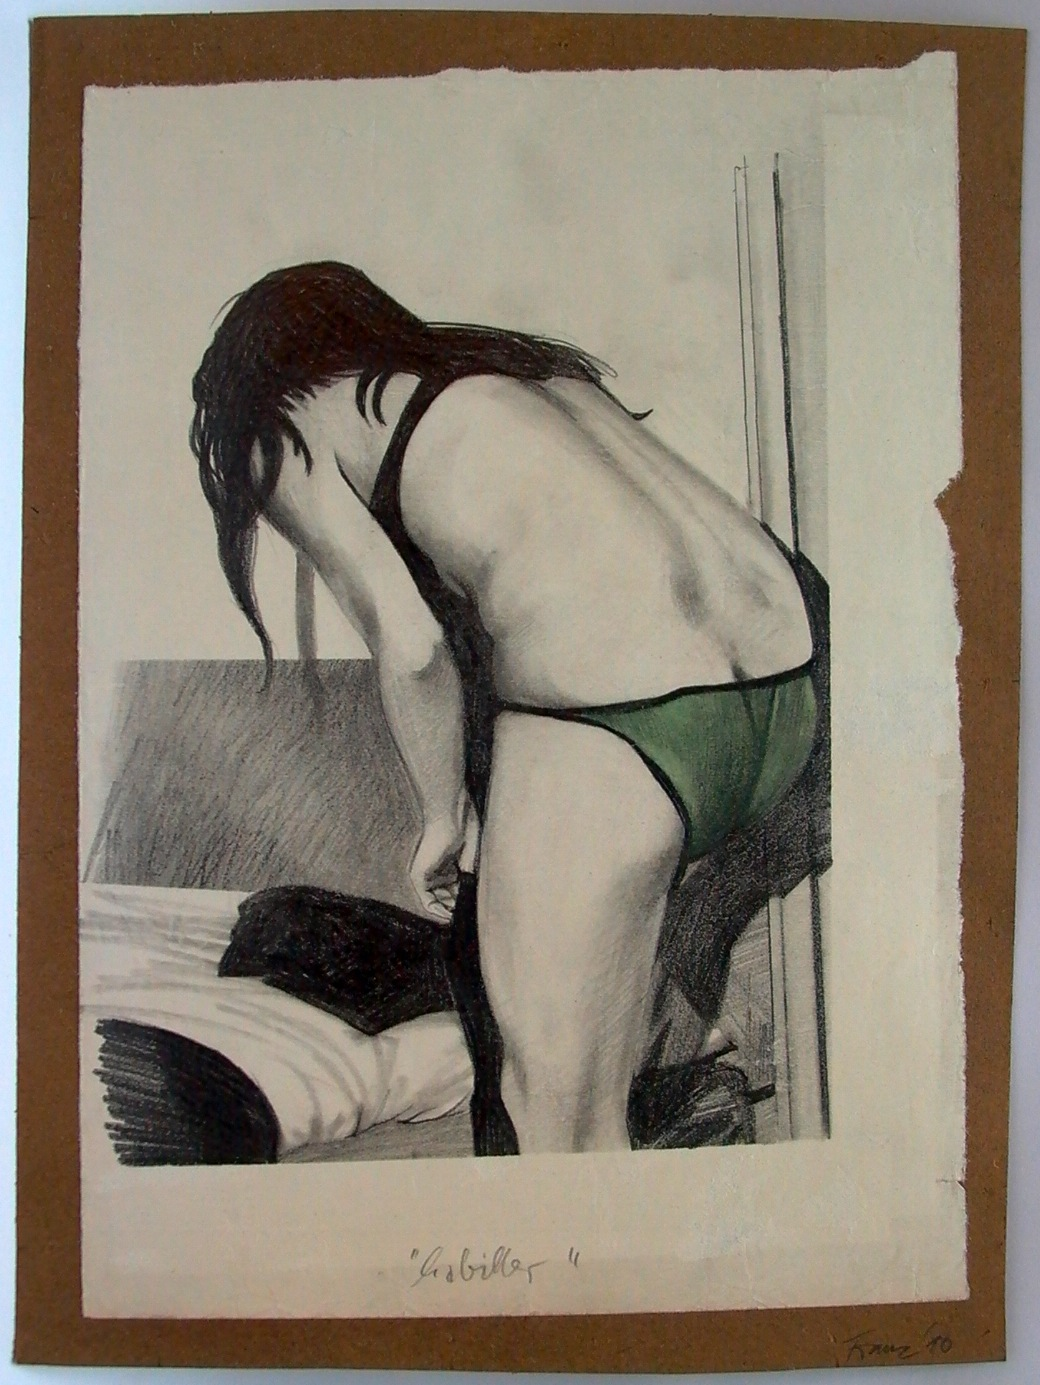 Habiller , 2010 Pencil and gouache on paper 38,5 x 28,5 cm